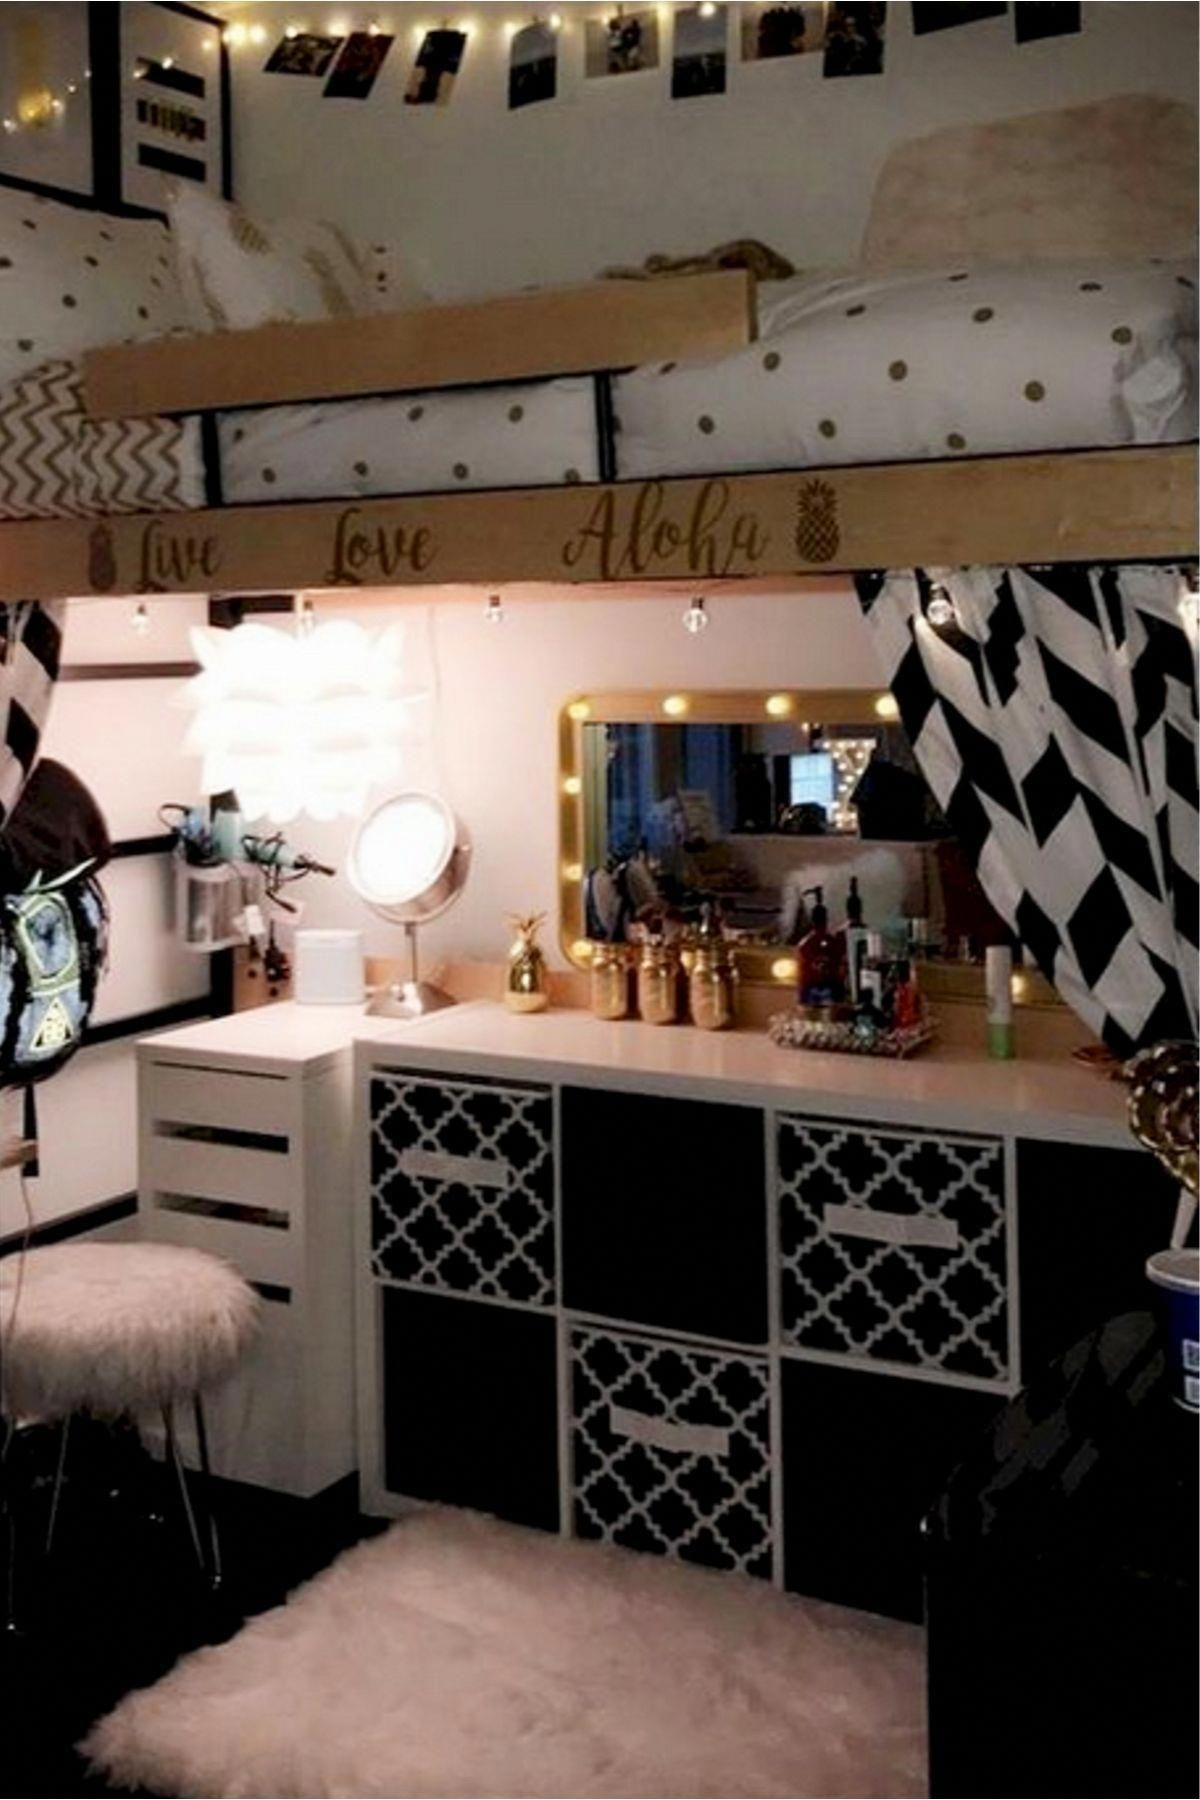 Artistic Dorm Decorating Ideas for Girls On Lovely Diy Dorm Room Ideas Dorm Decorating Ideas Pictures for On Dorm Decorating Ideas for Girls